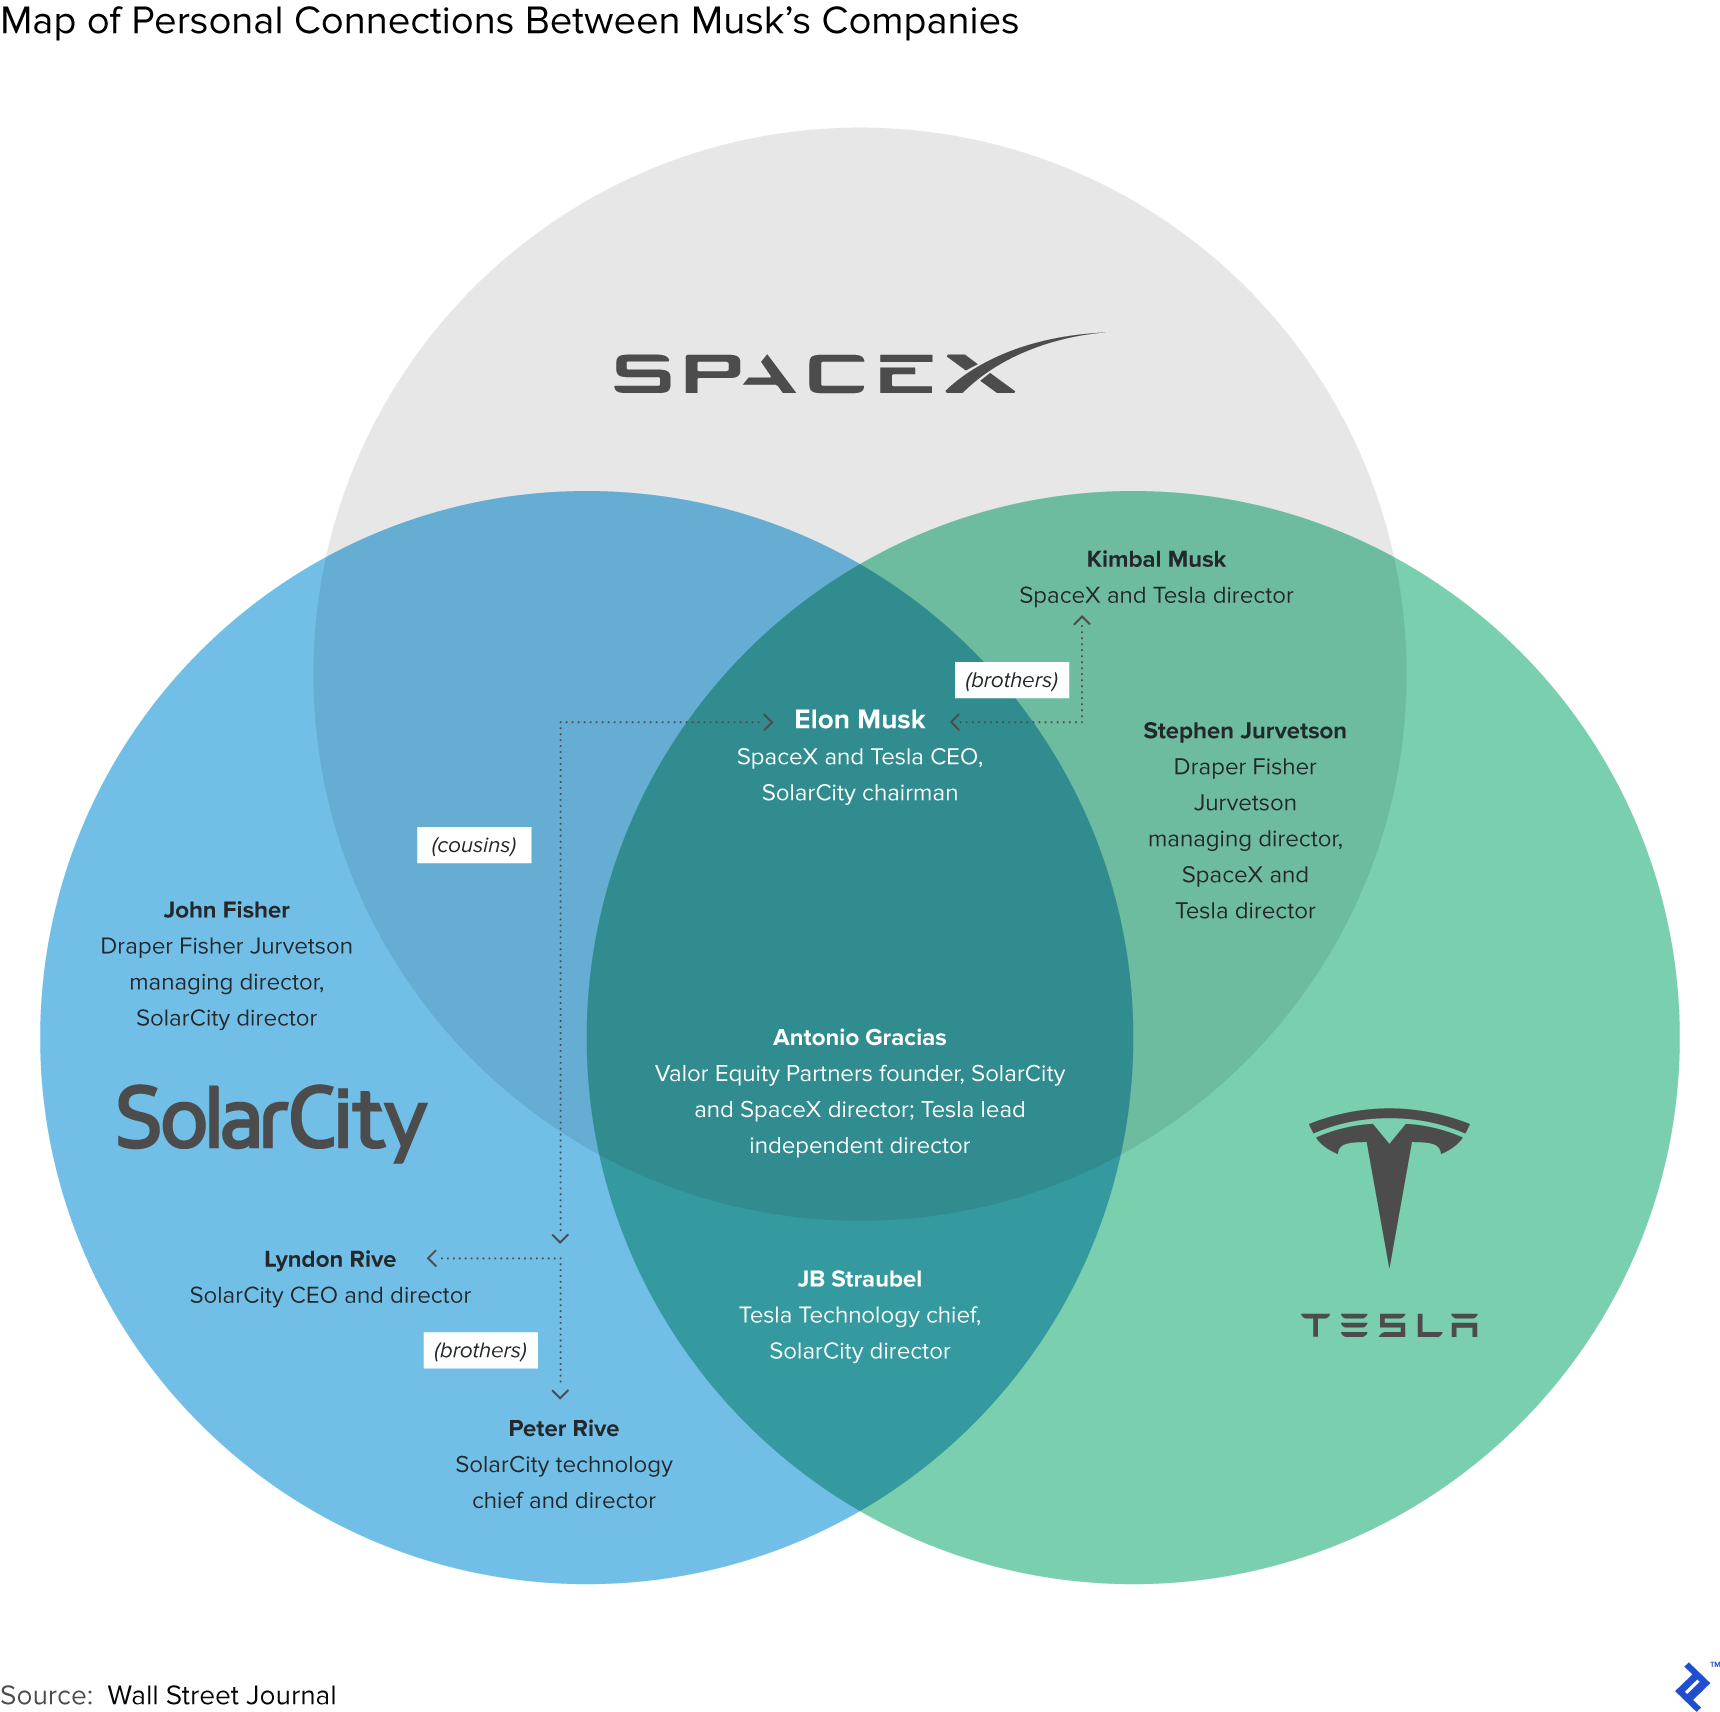 Map of Personal Connections between Musk's Companies